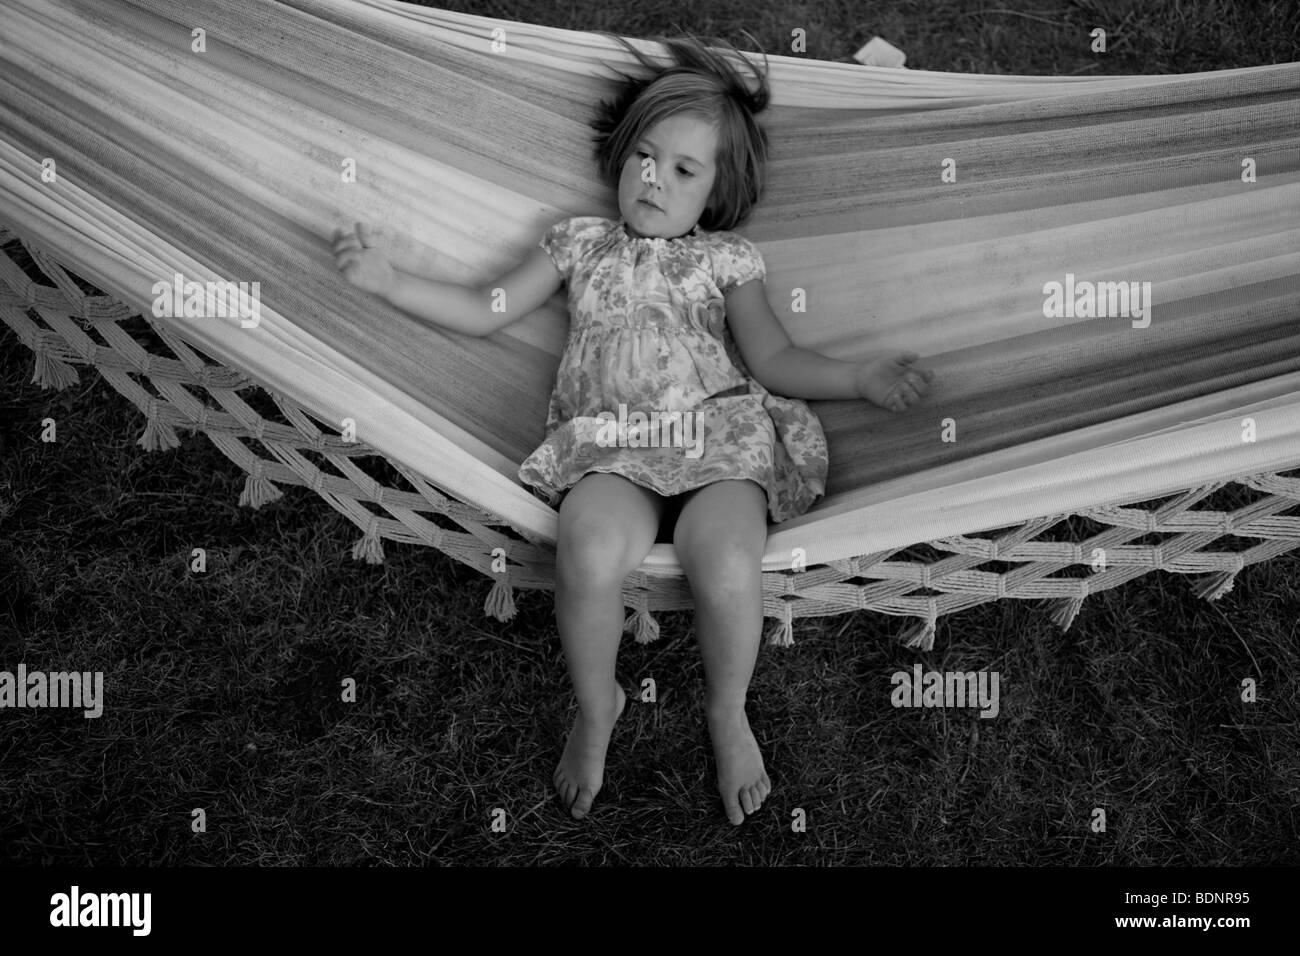 High angle view of young girl in hammock relaxing - Stock Image